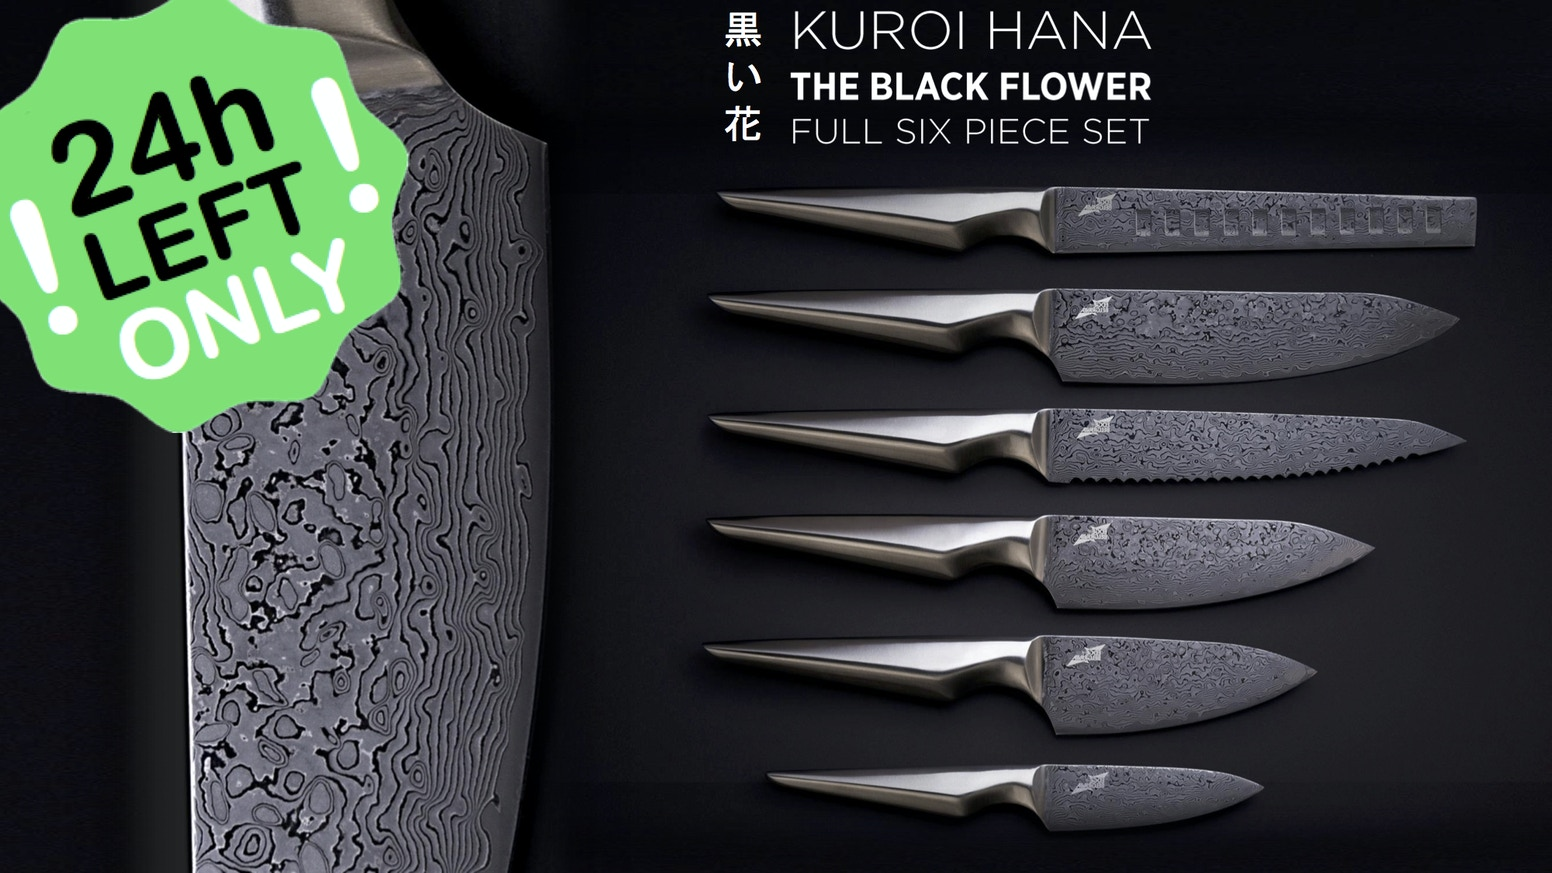 Kuroi Hana is the fusion of London design with premium Japanese AUS-10 steel. The dark floral pattern is unique to each blade.